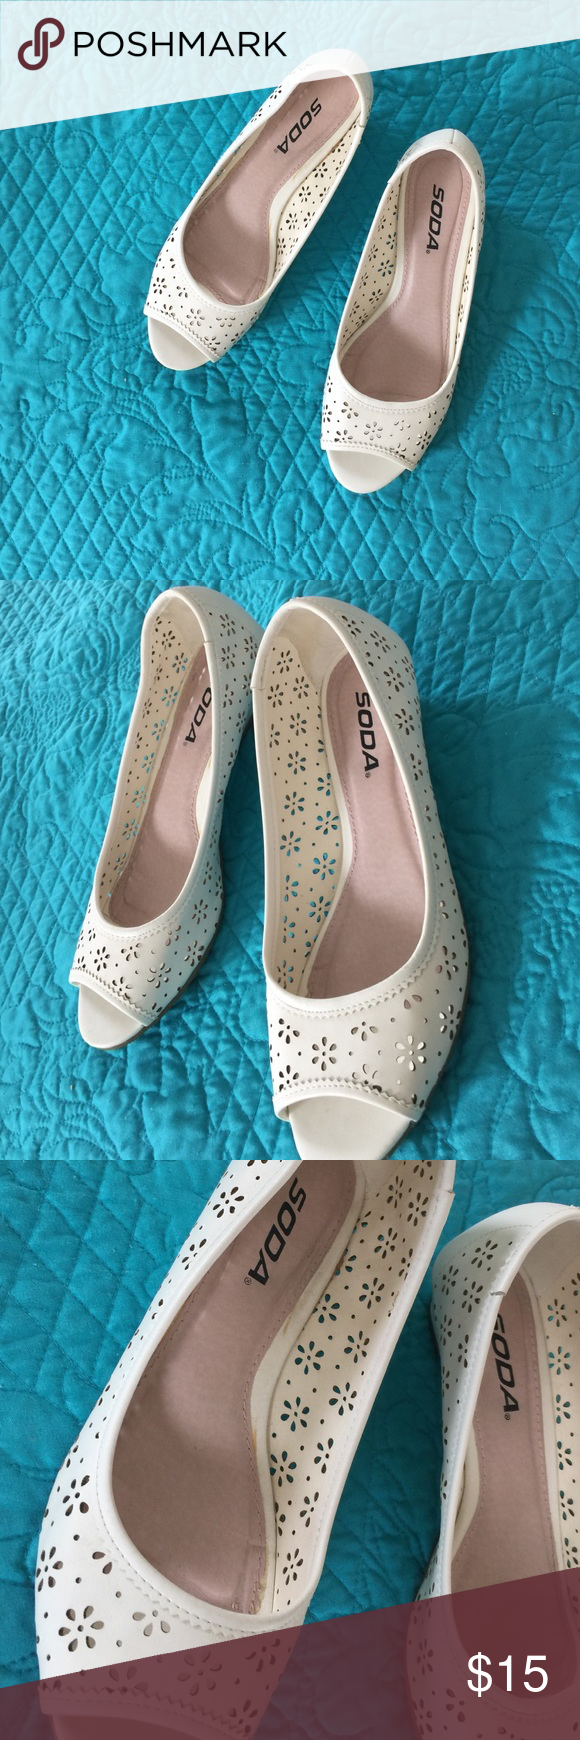    Soda    Wedge Gently worn. Great condition. No trades, PayPal, or holds. Comment for any additional questions! Thank you✨💖 Soda Shoes Wedges